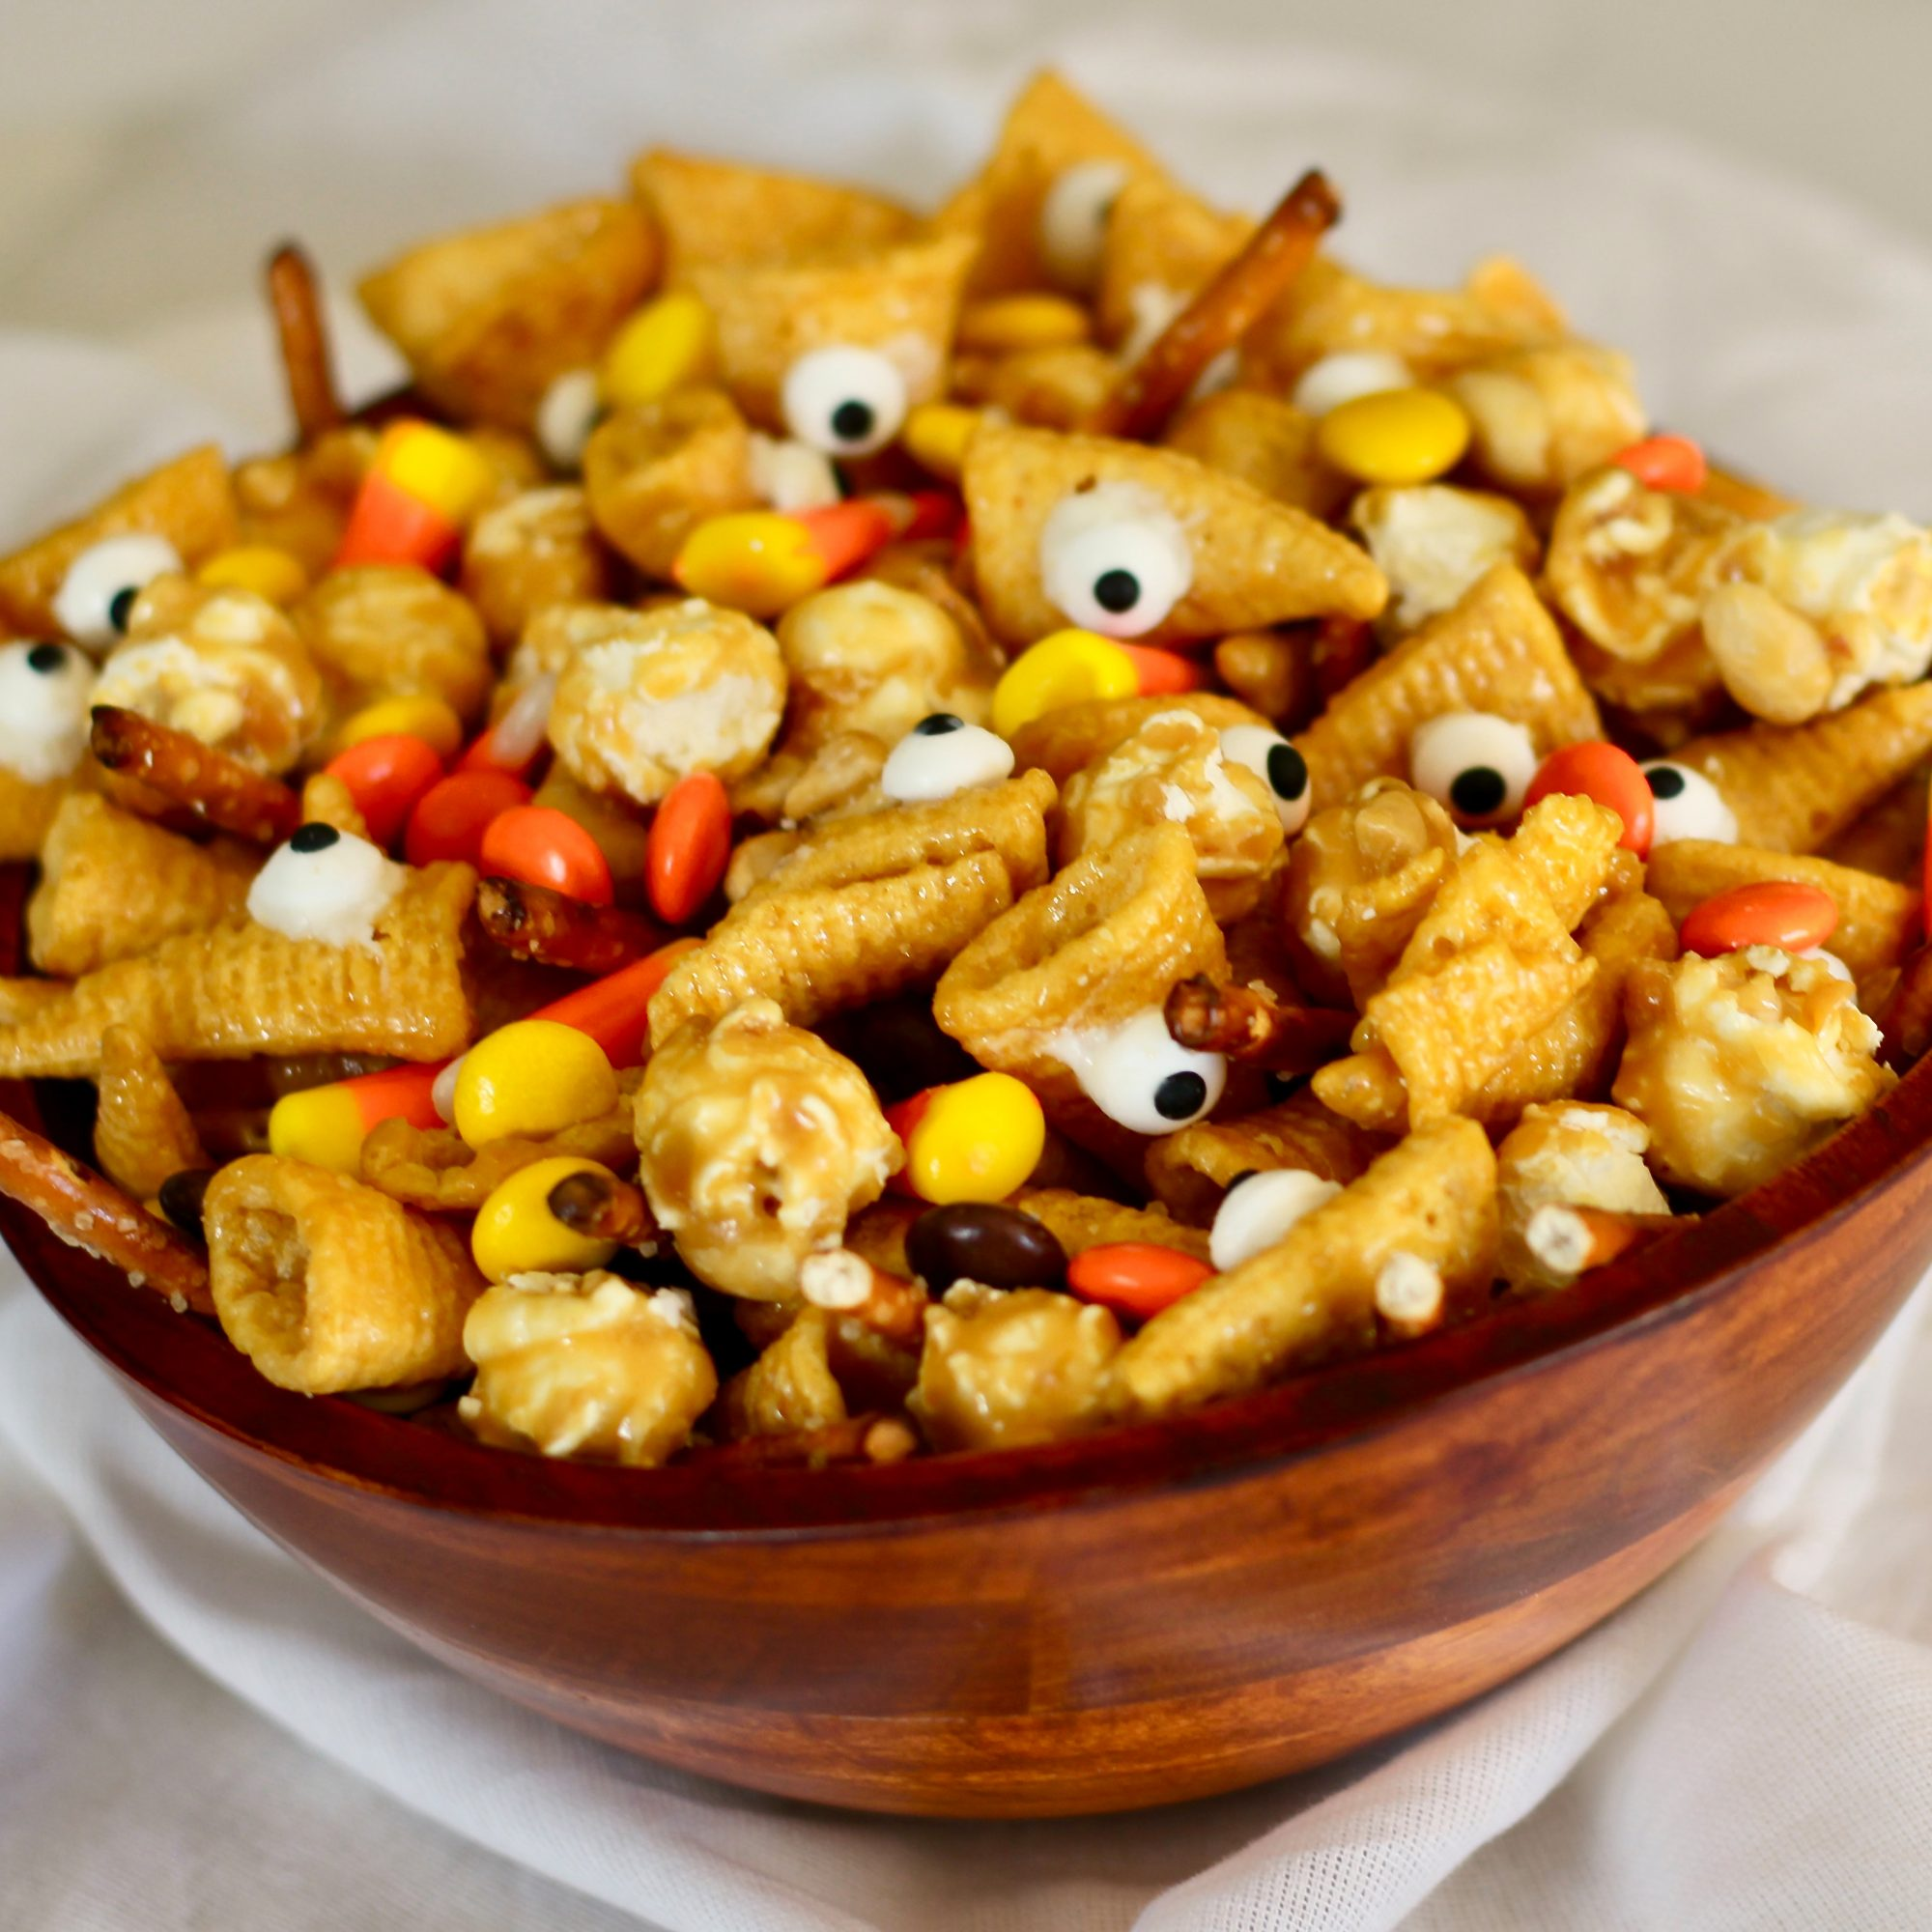 snack mix in a wooden bowl